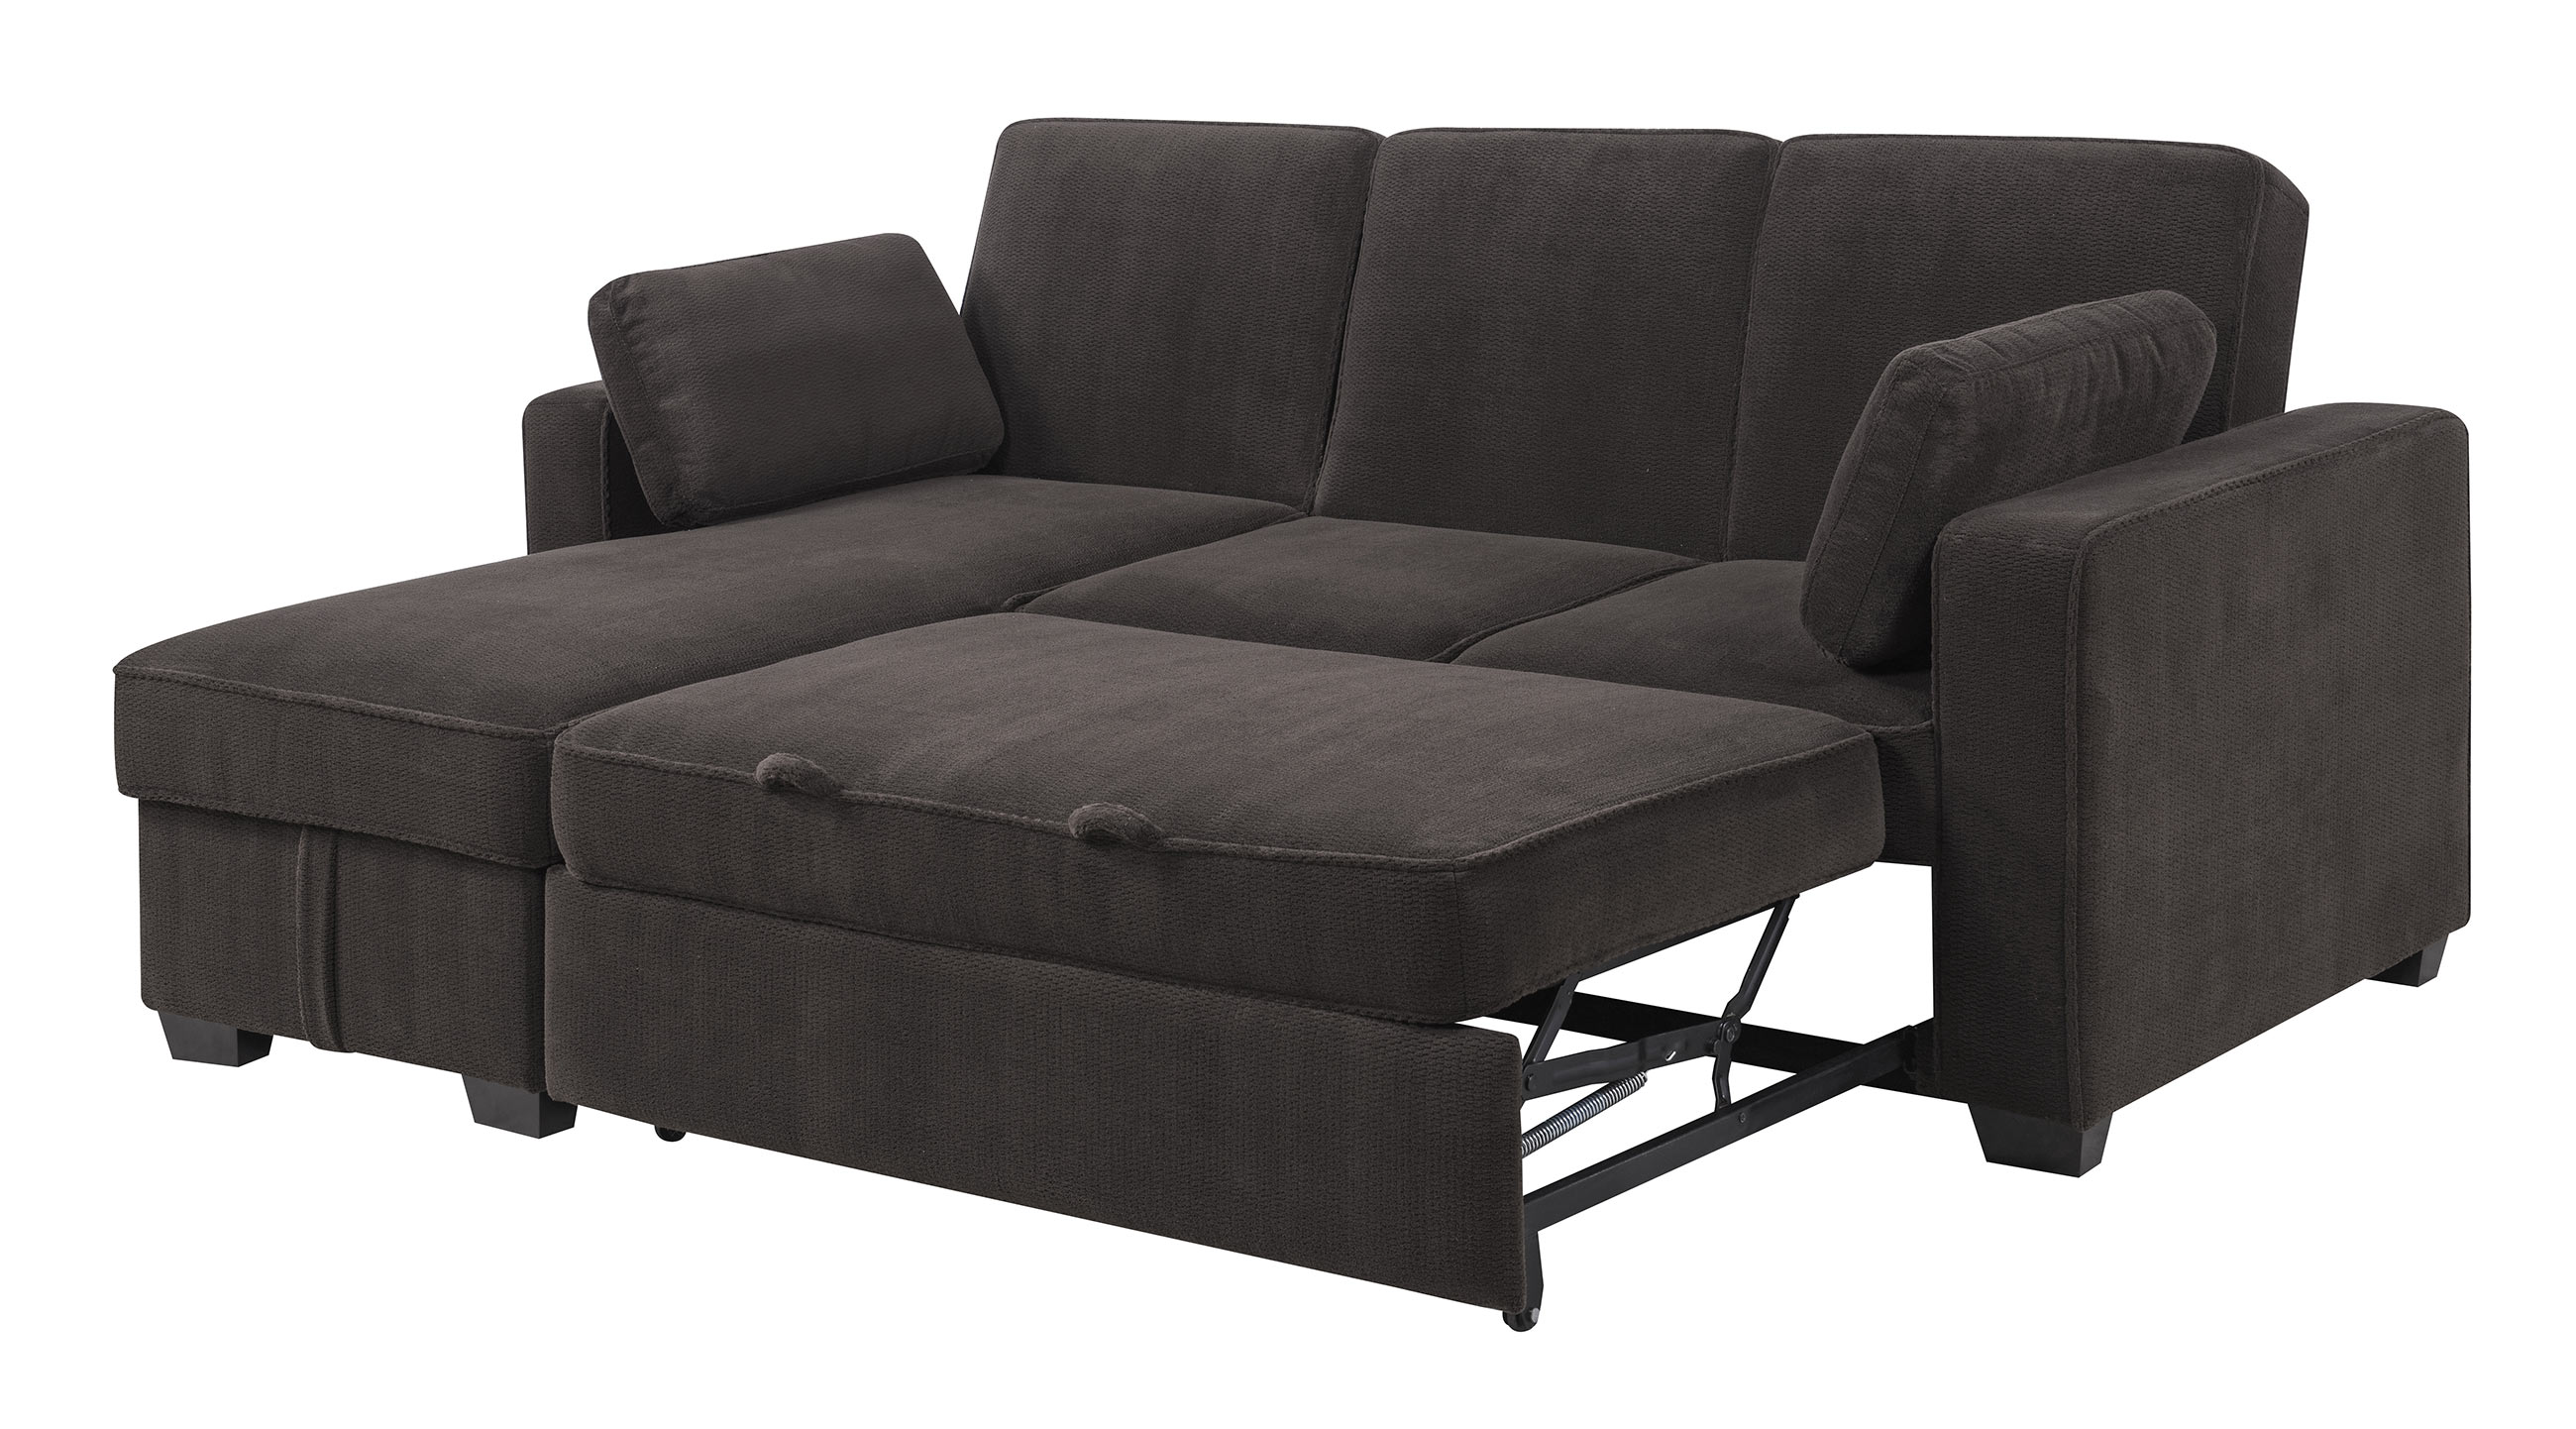 Beautiful serta convertible sofa marmsweb marmsweb for Beeson fabric queen sleeper chaise sofa